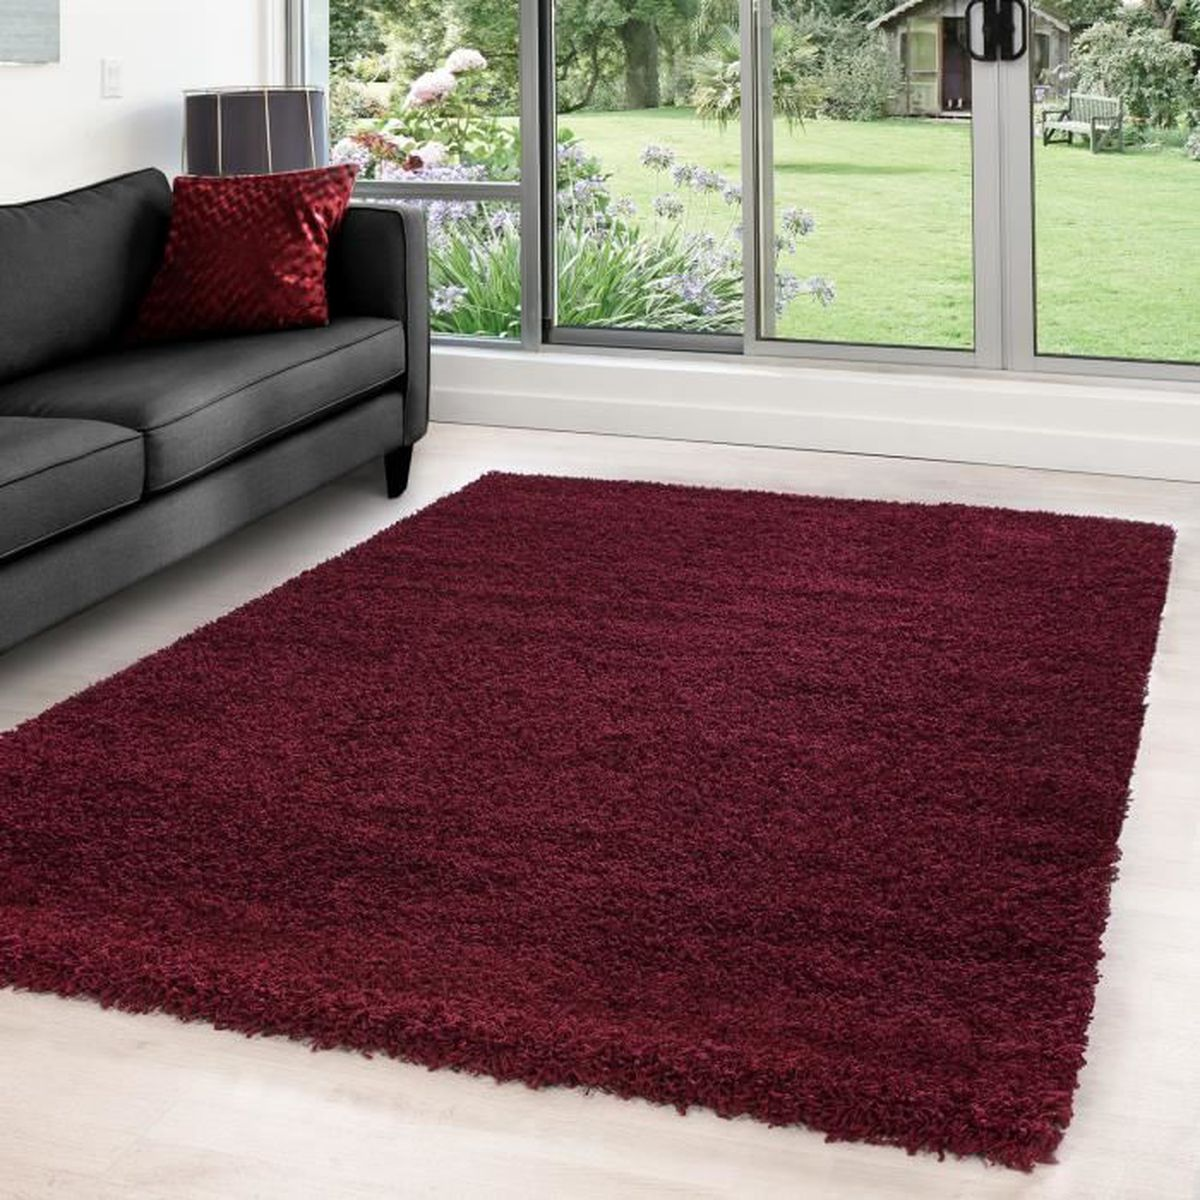 hirsute tapis moquette du salon shaggy avec une hauteur de 5 cm pile monochrome 4444 rouge. Black Bedroom Furniture Sets. Home Design Ideas